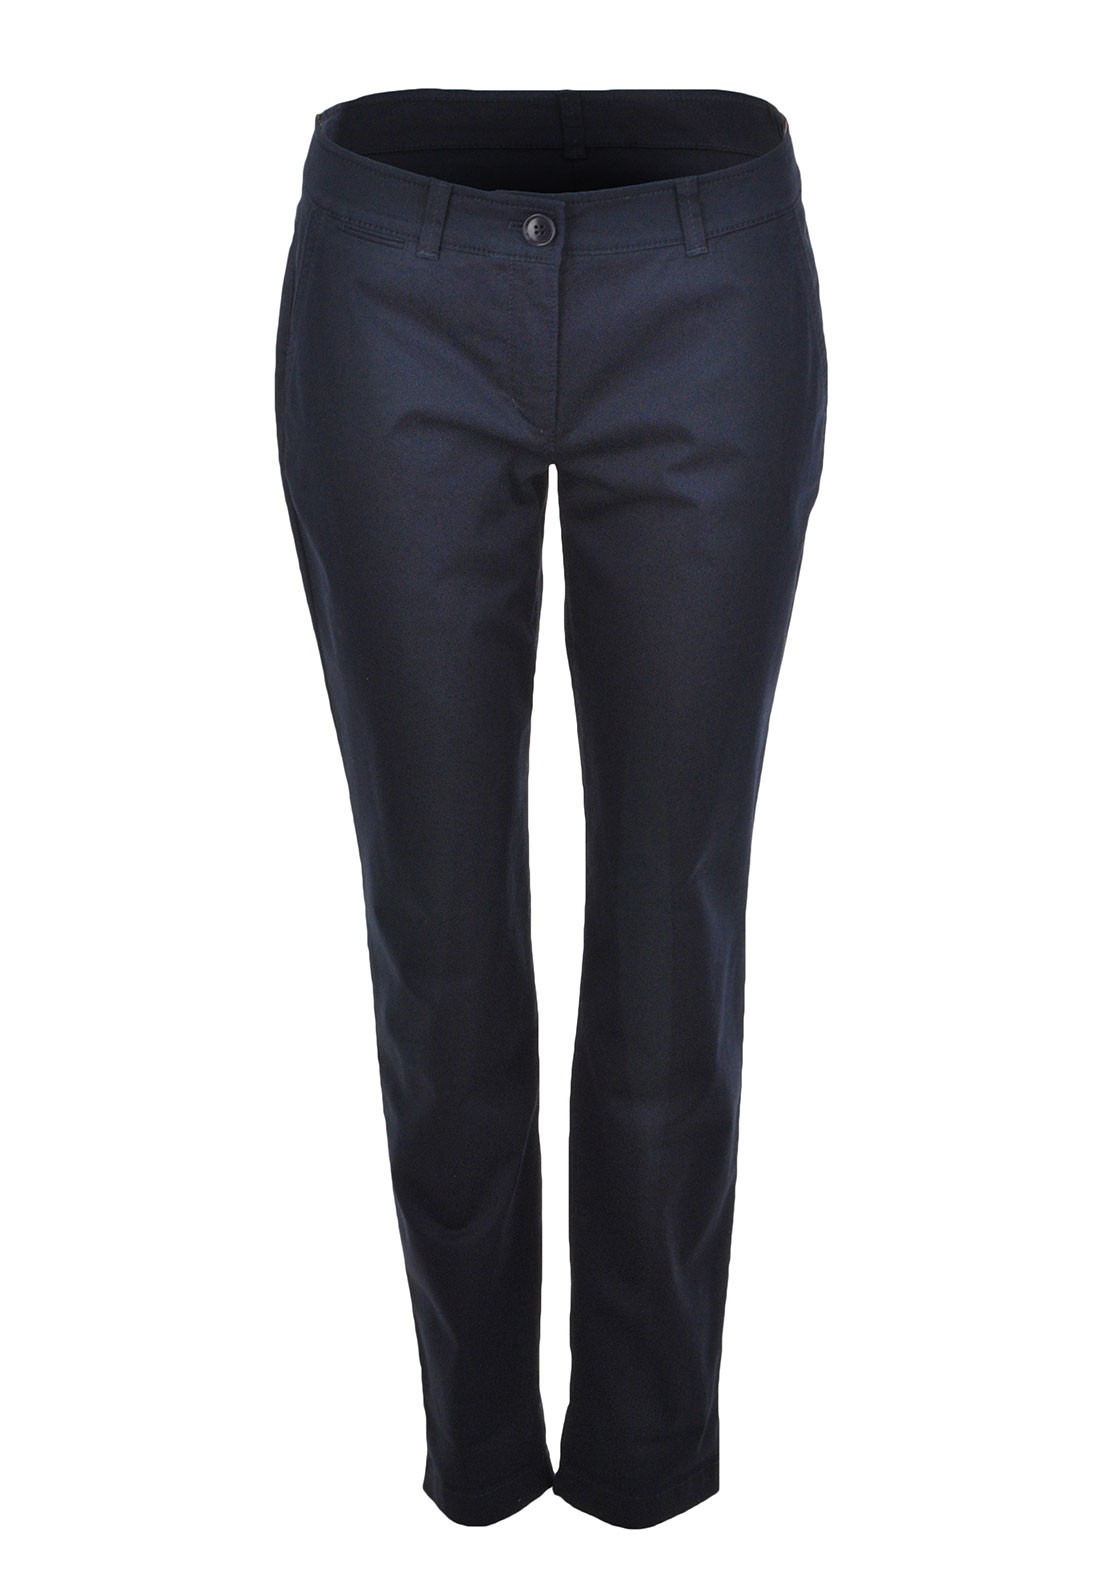 Gerry Weber Straight Leg Chino Trousers, Navy